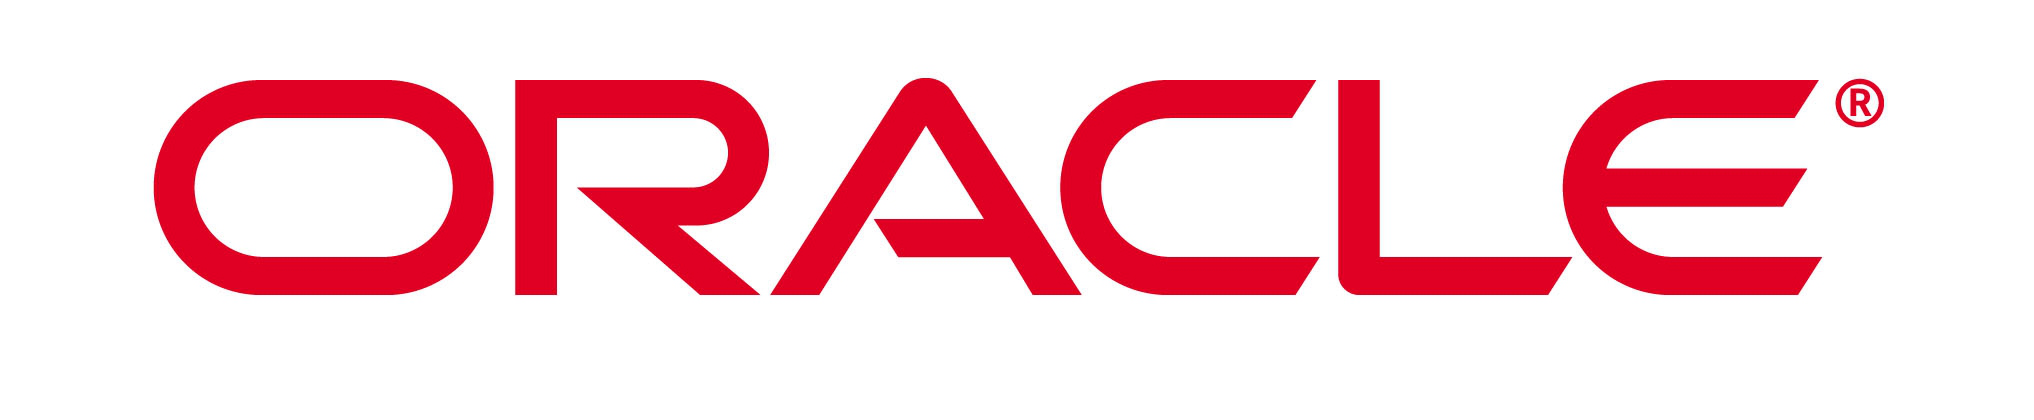 logo-oracle-large-1405074731.png